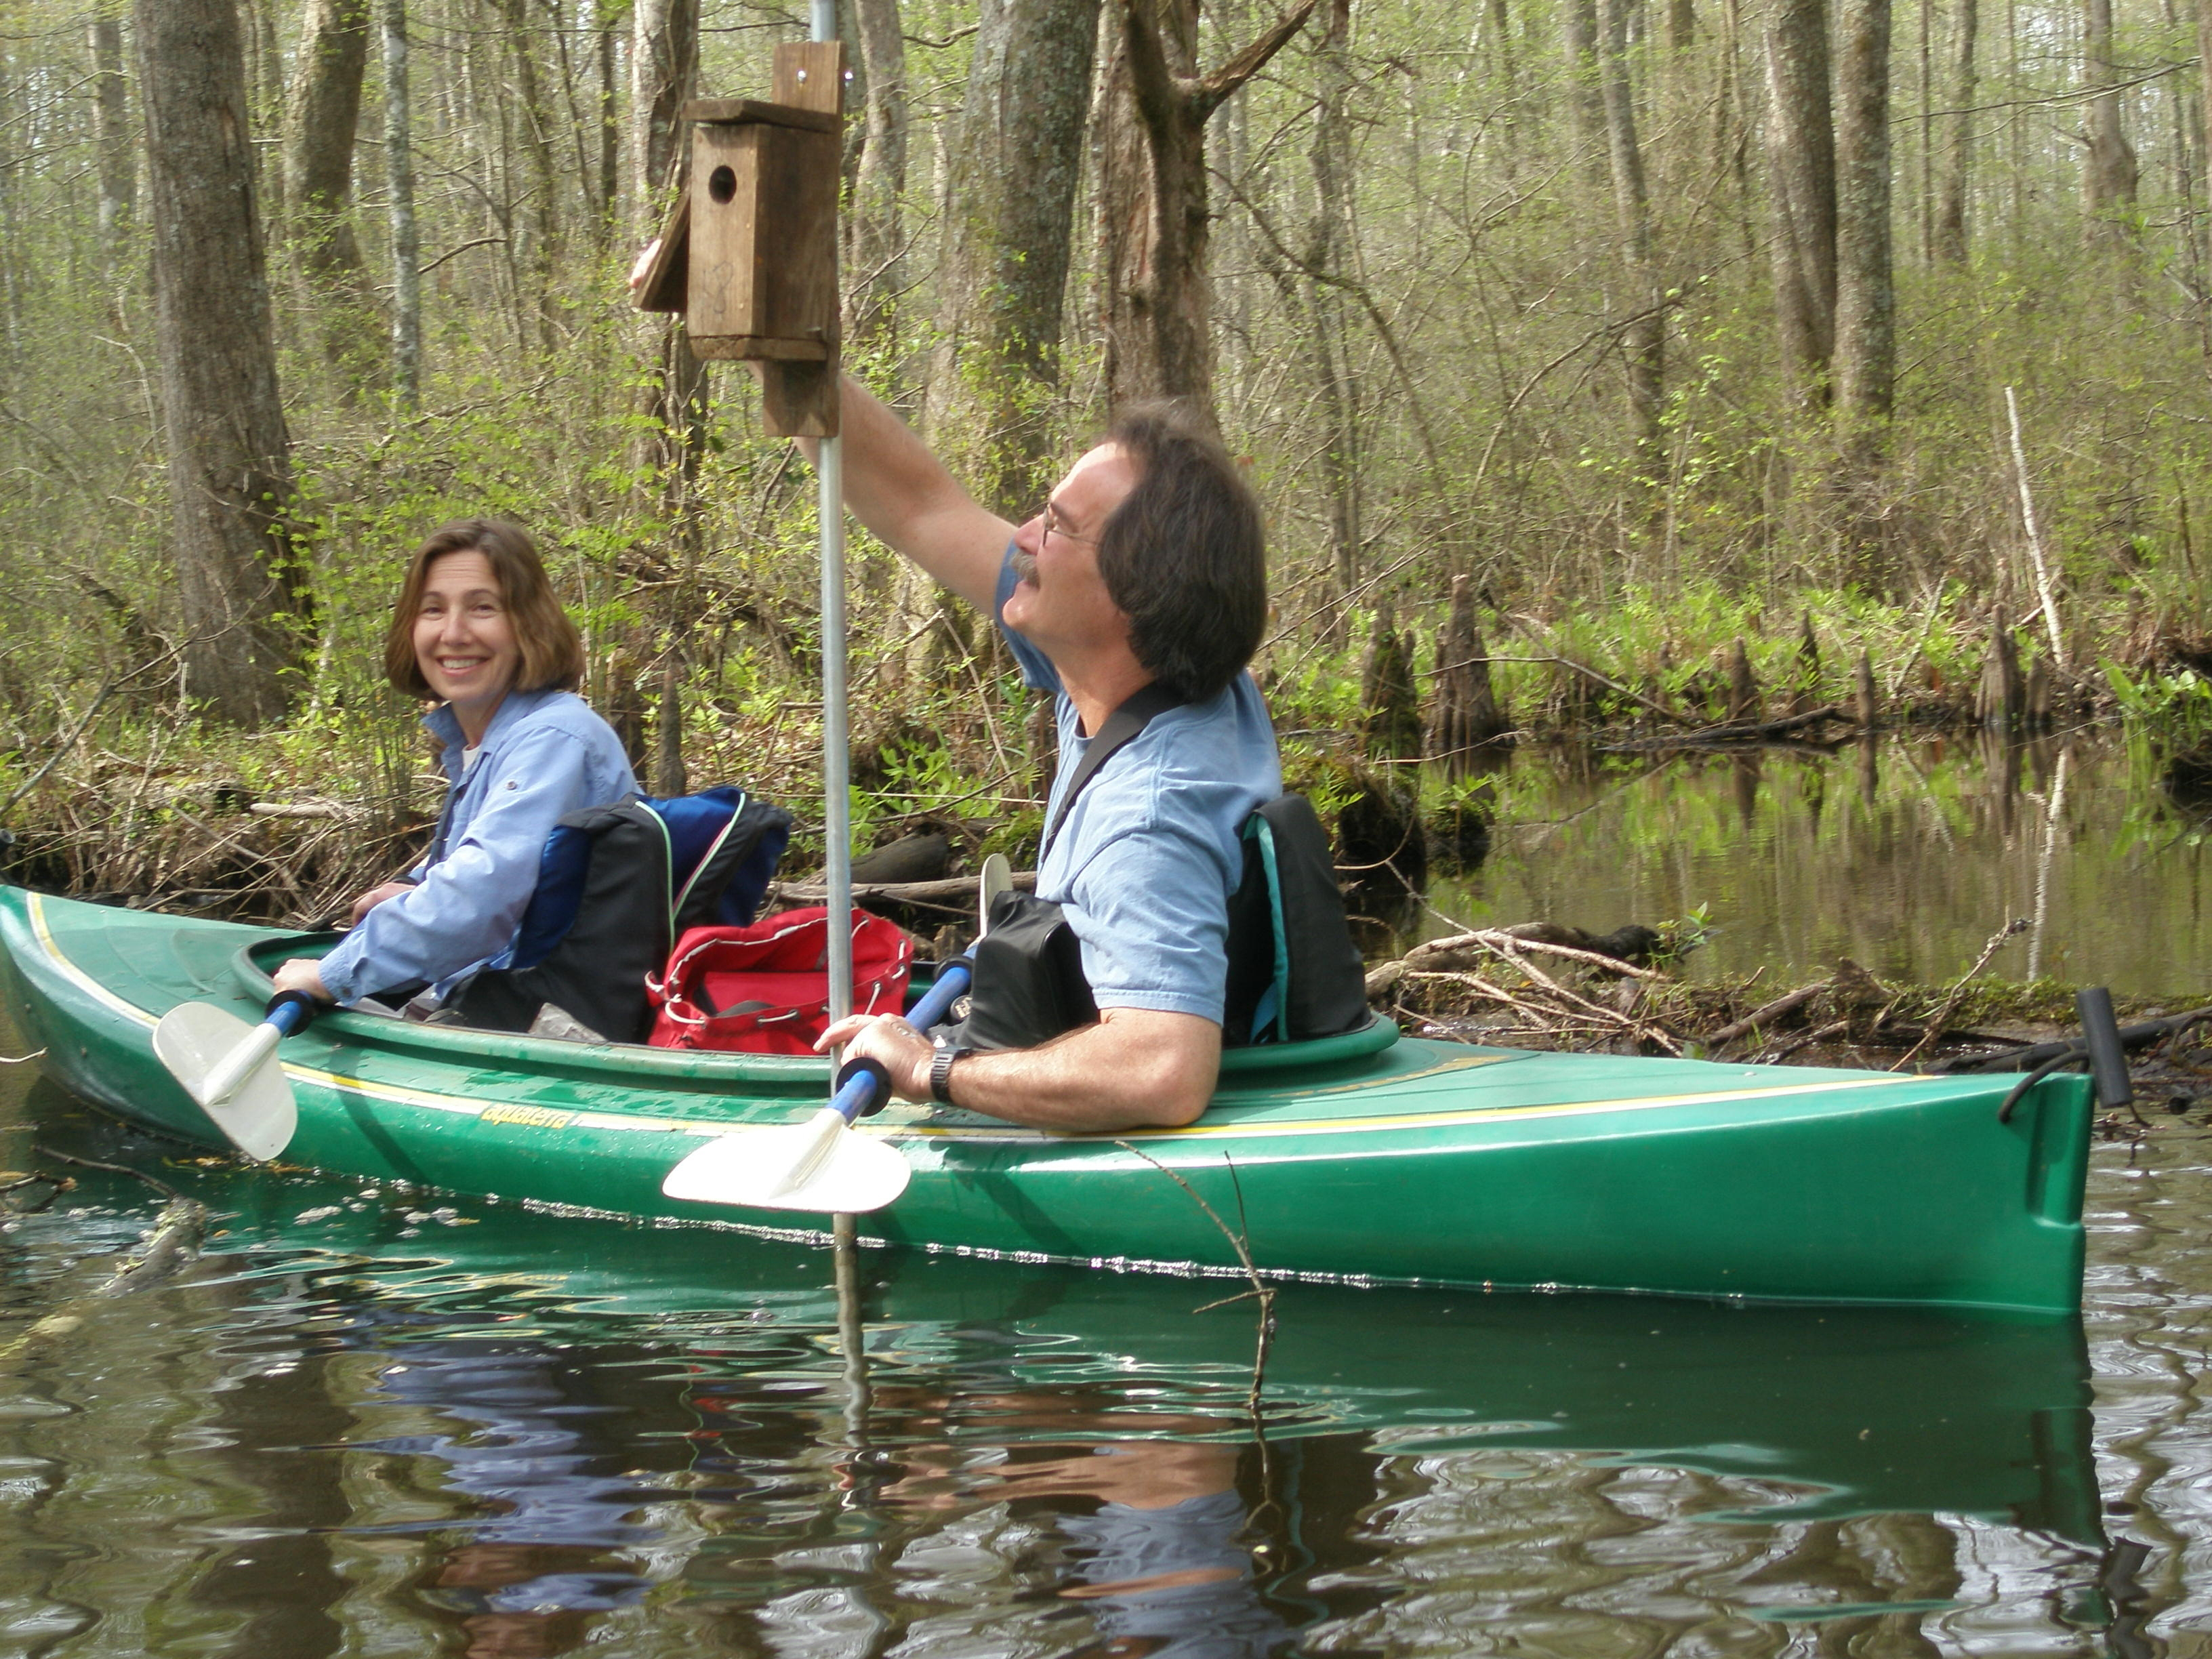 Two people in a kayak on a woodland pond, next to a bird box supported on a post.